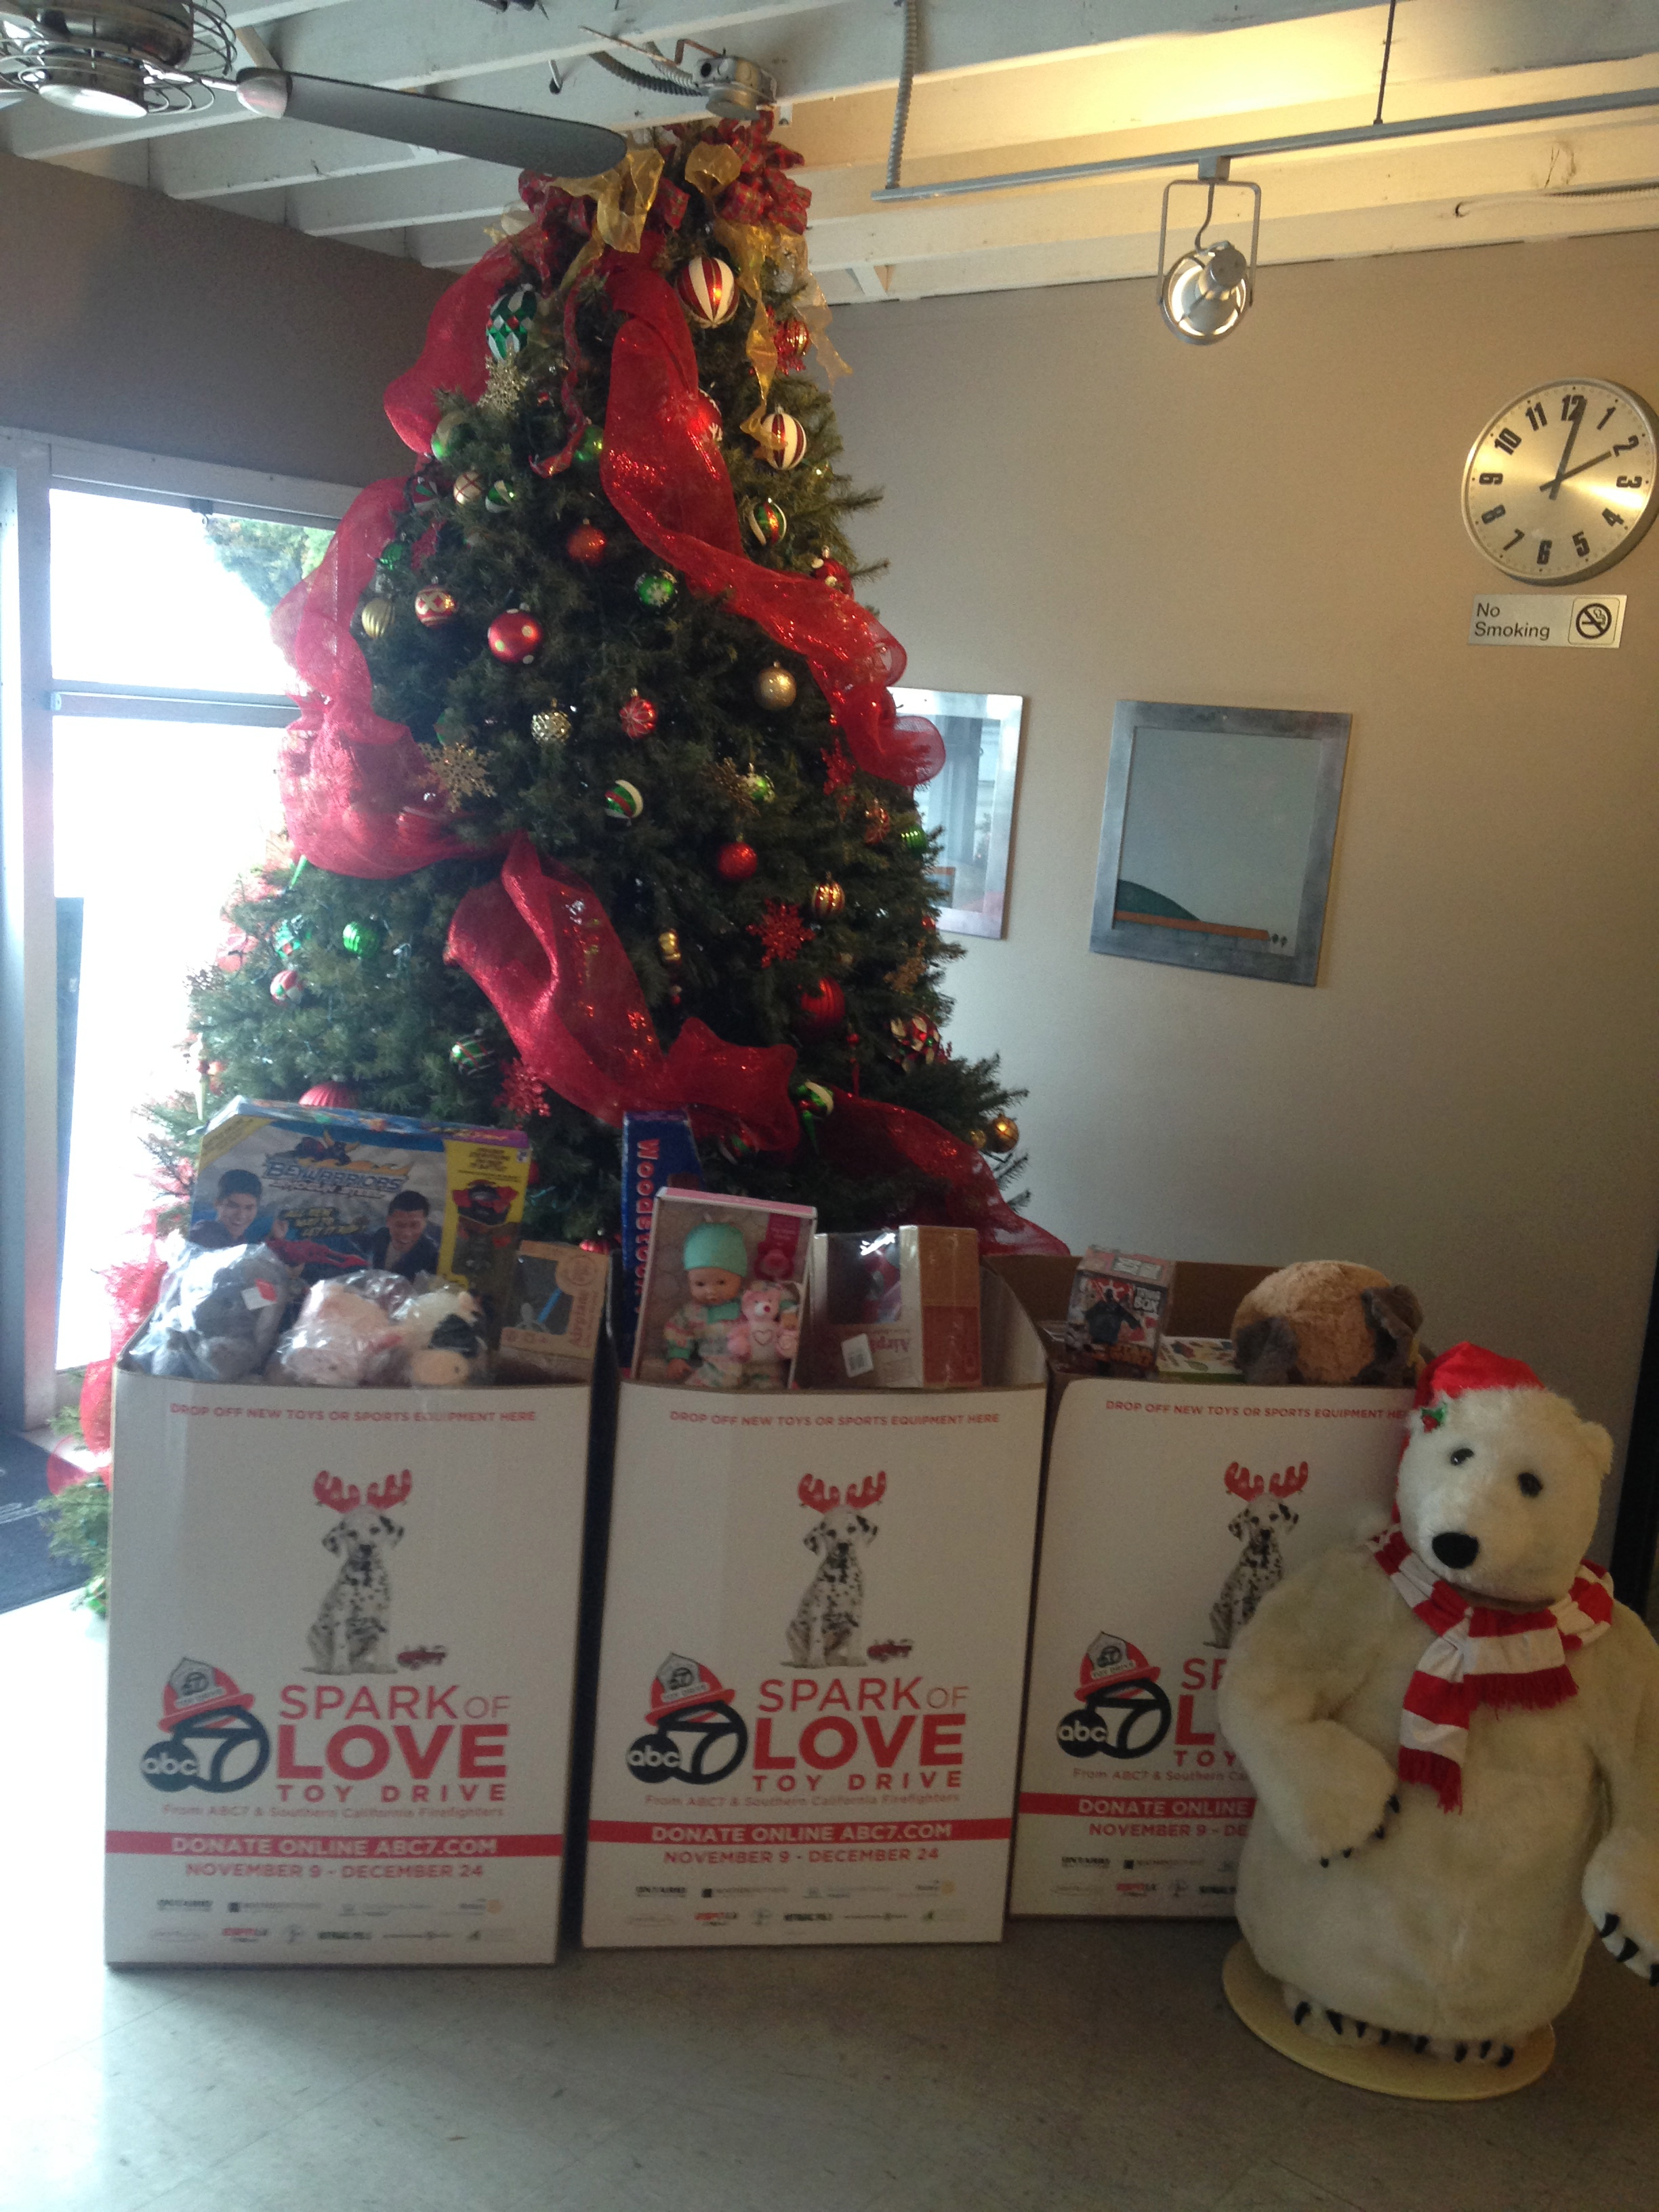 dreams of holiday toys take flight with help from local airport supporters santa monica. Black Bedroom Furniture Sets. Home Design Ideas